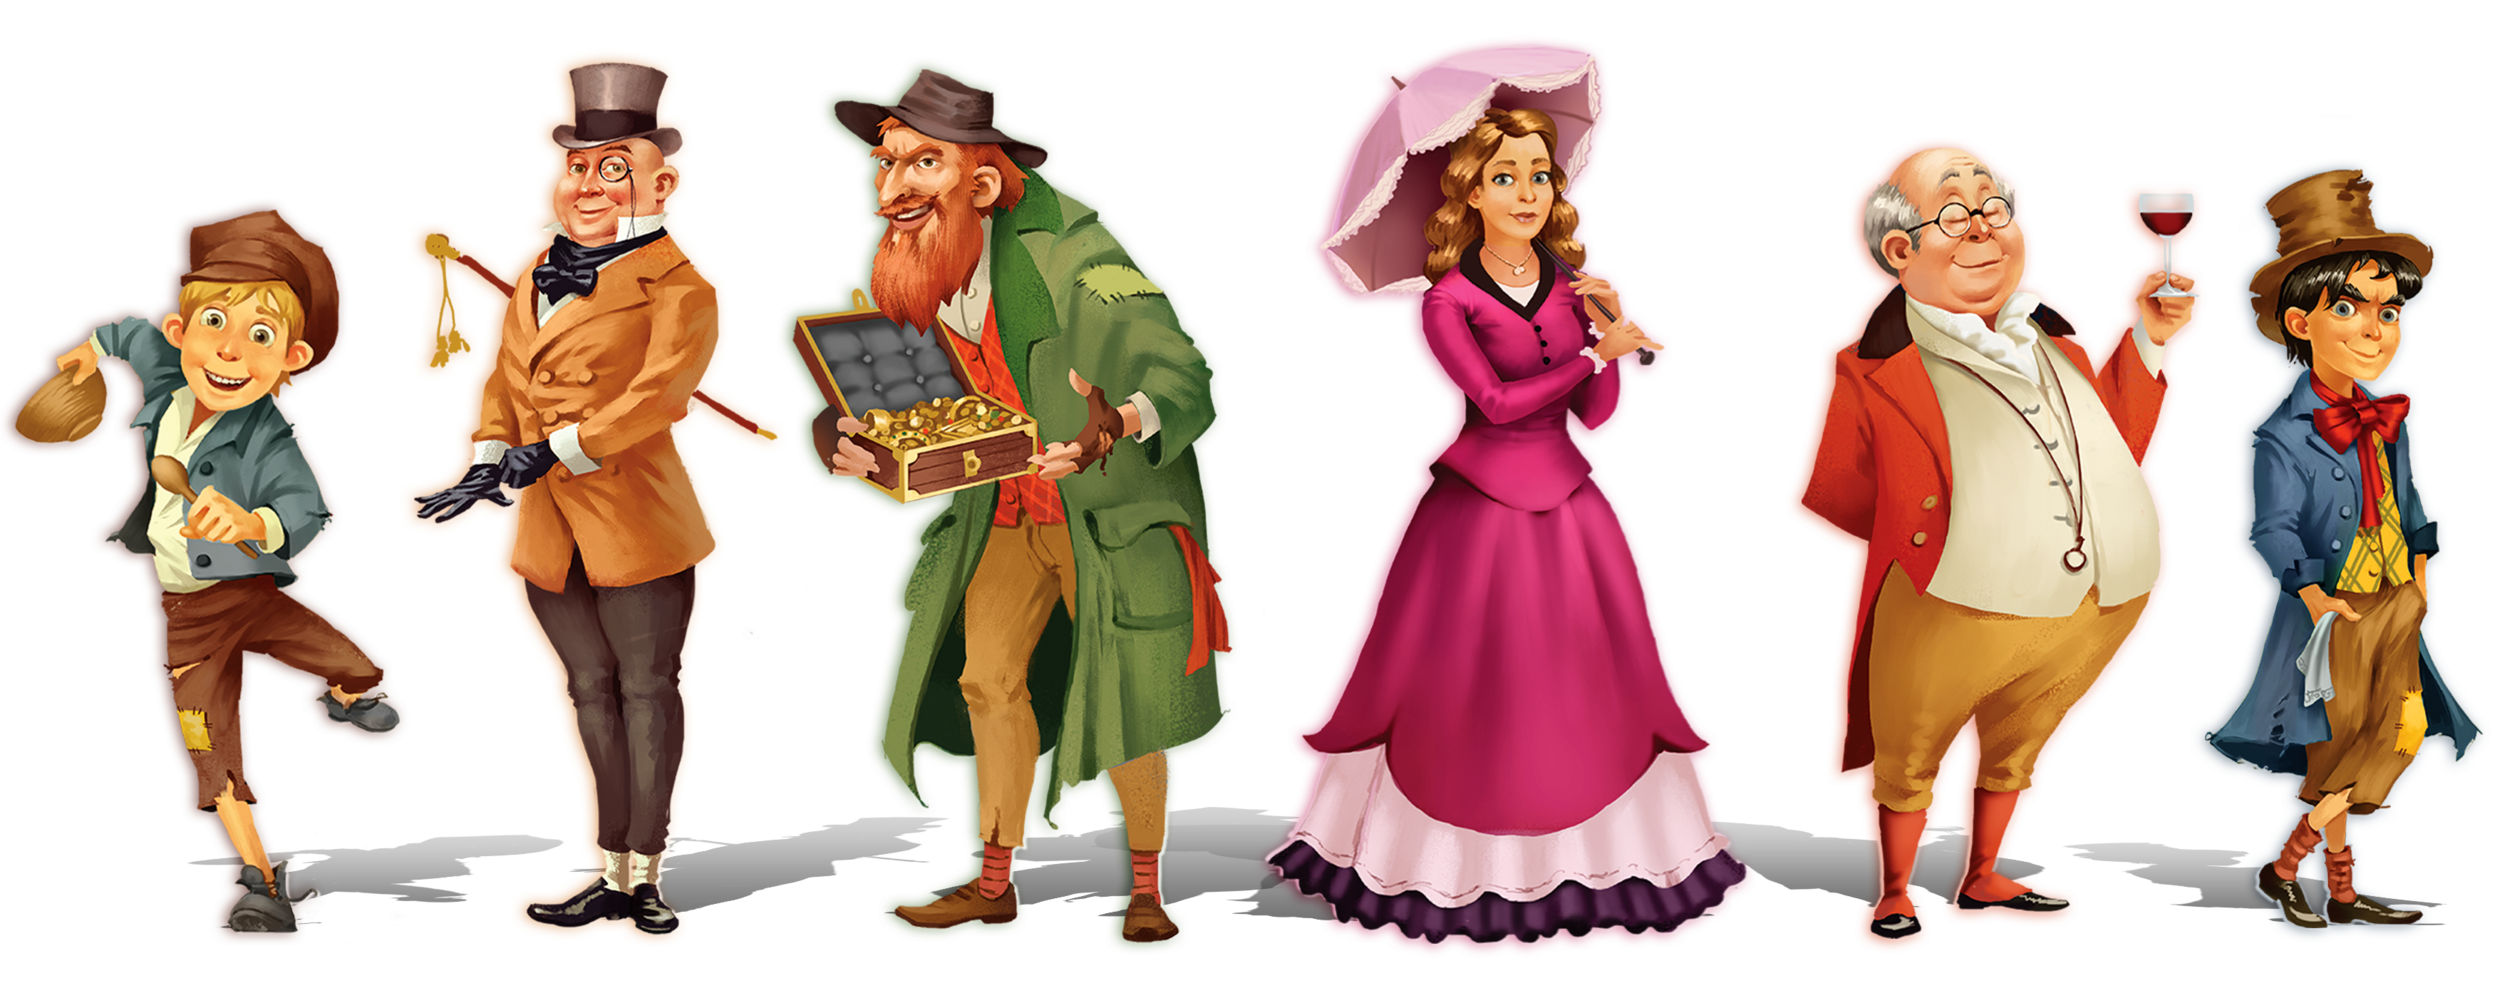 Scrooge The Board Game Characters.png